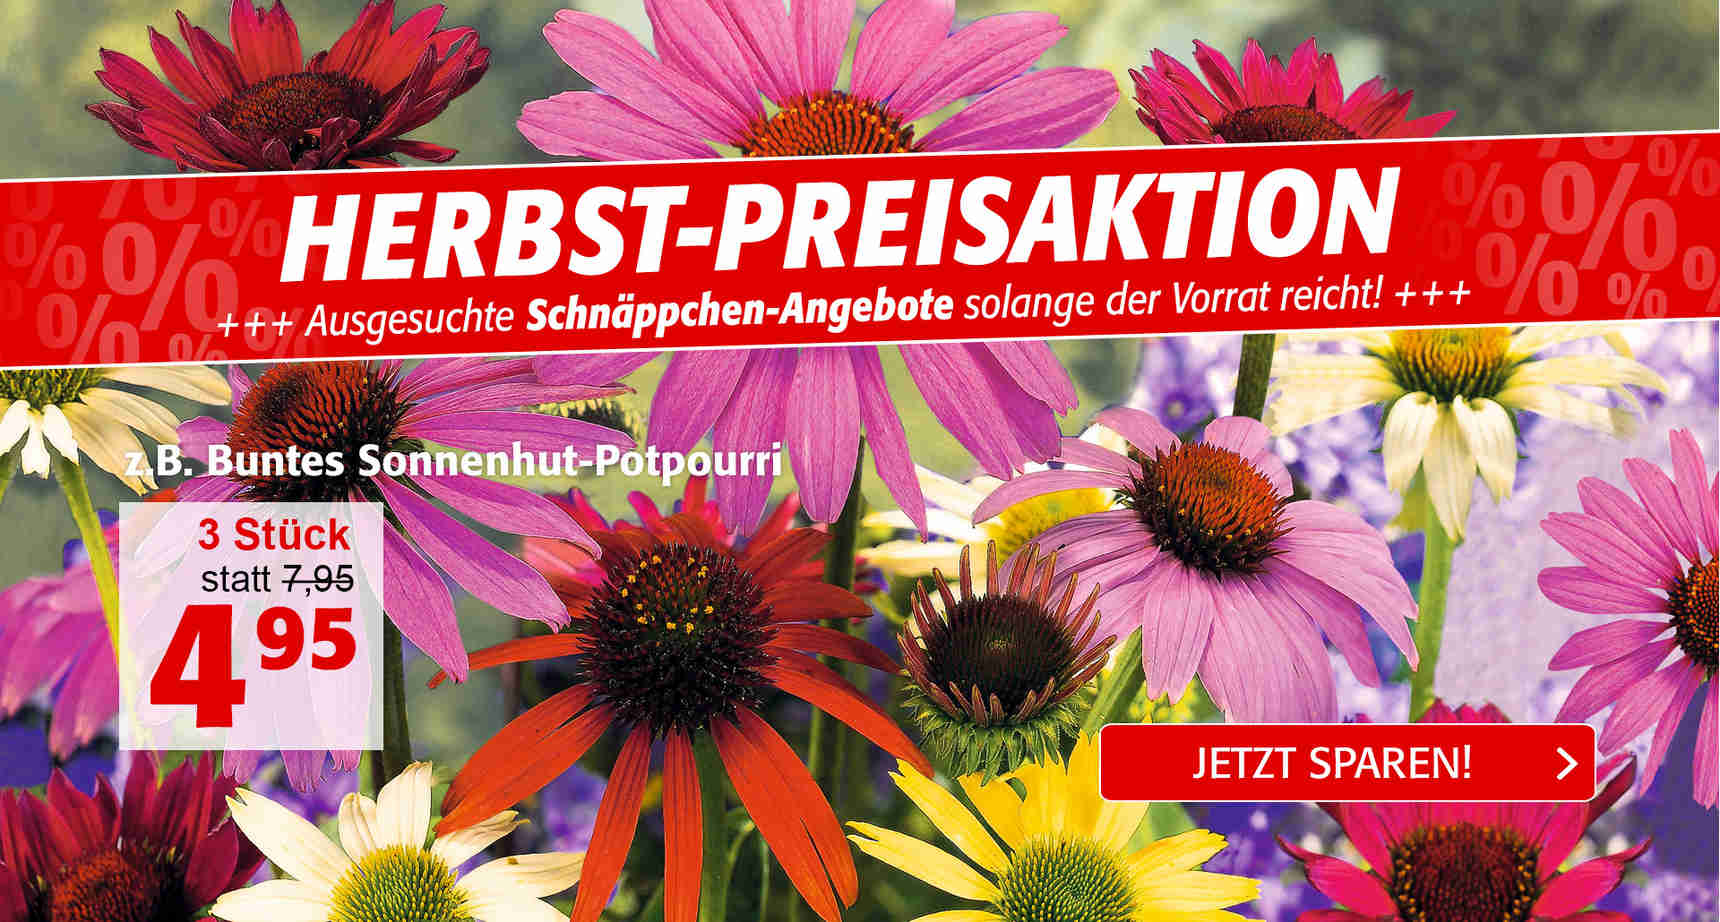 +++ (1) Herbstpreisaktion Sale 1 +++ - 3